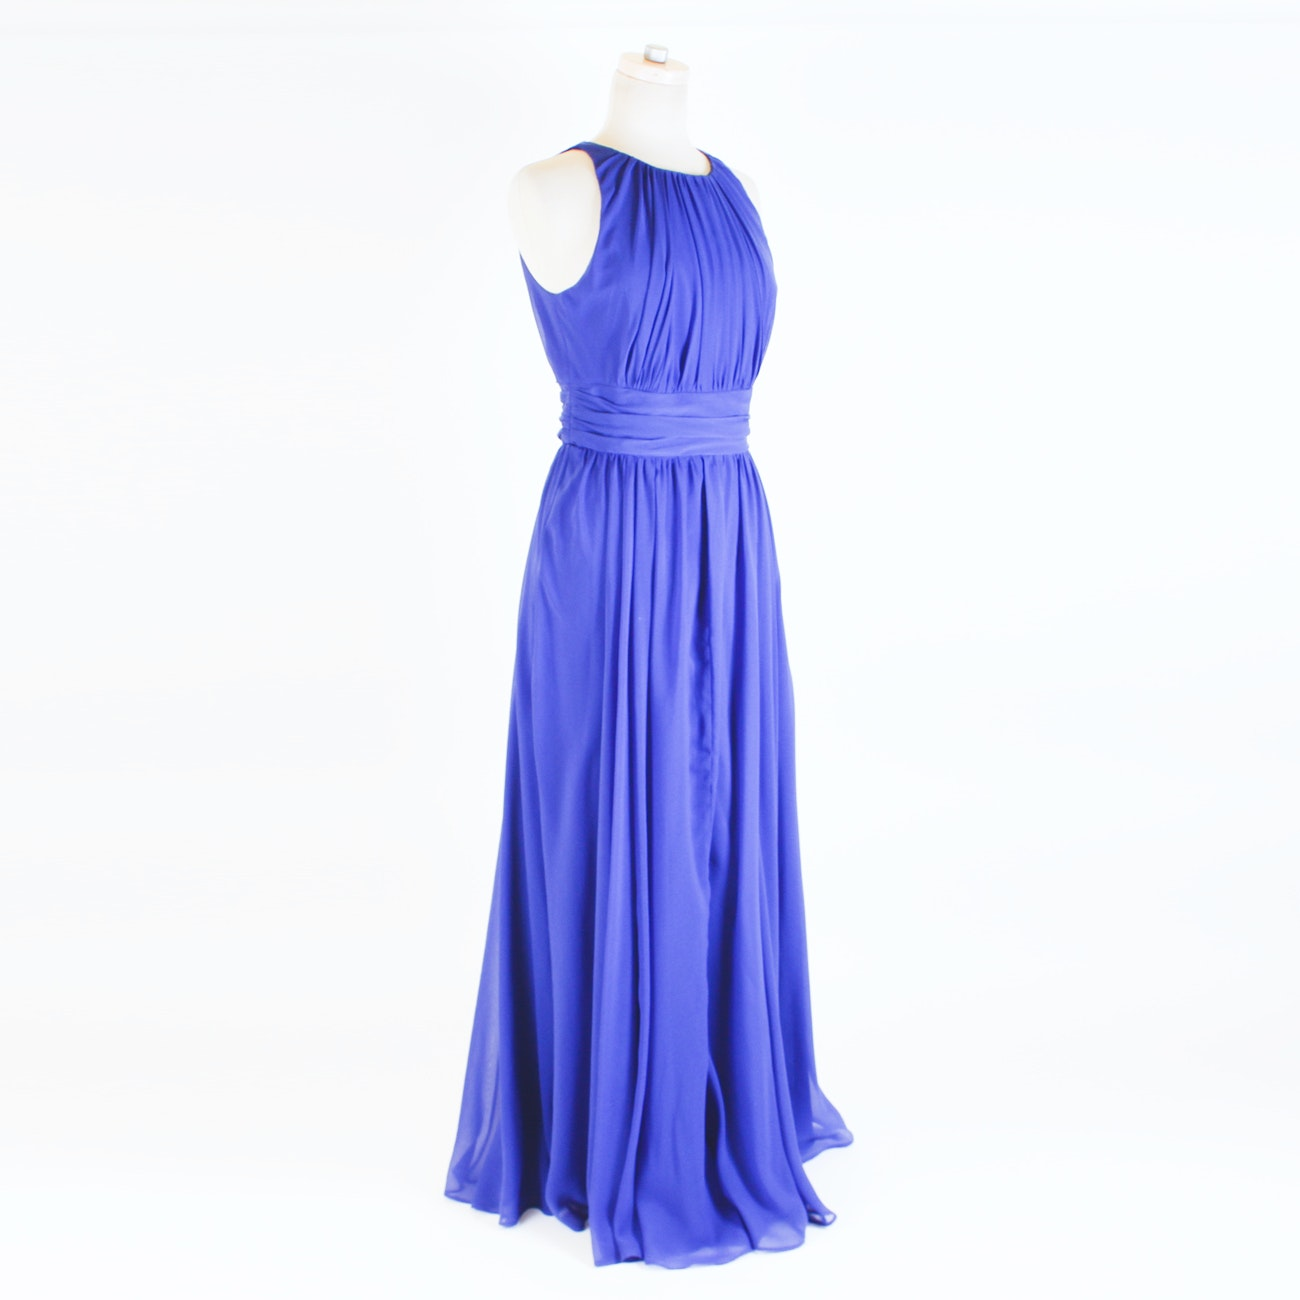 Badgley Mischka Collection Royal Blue Satin Evening Gown